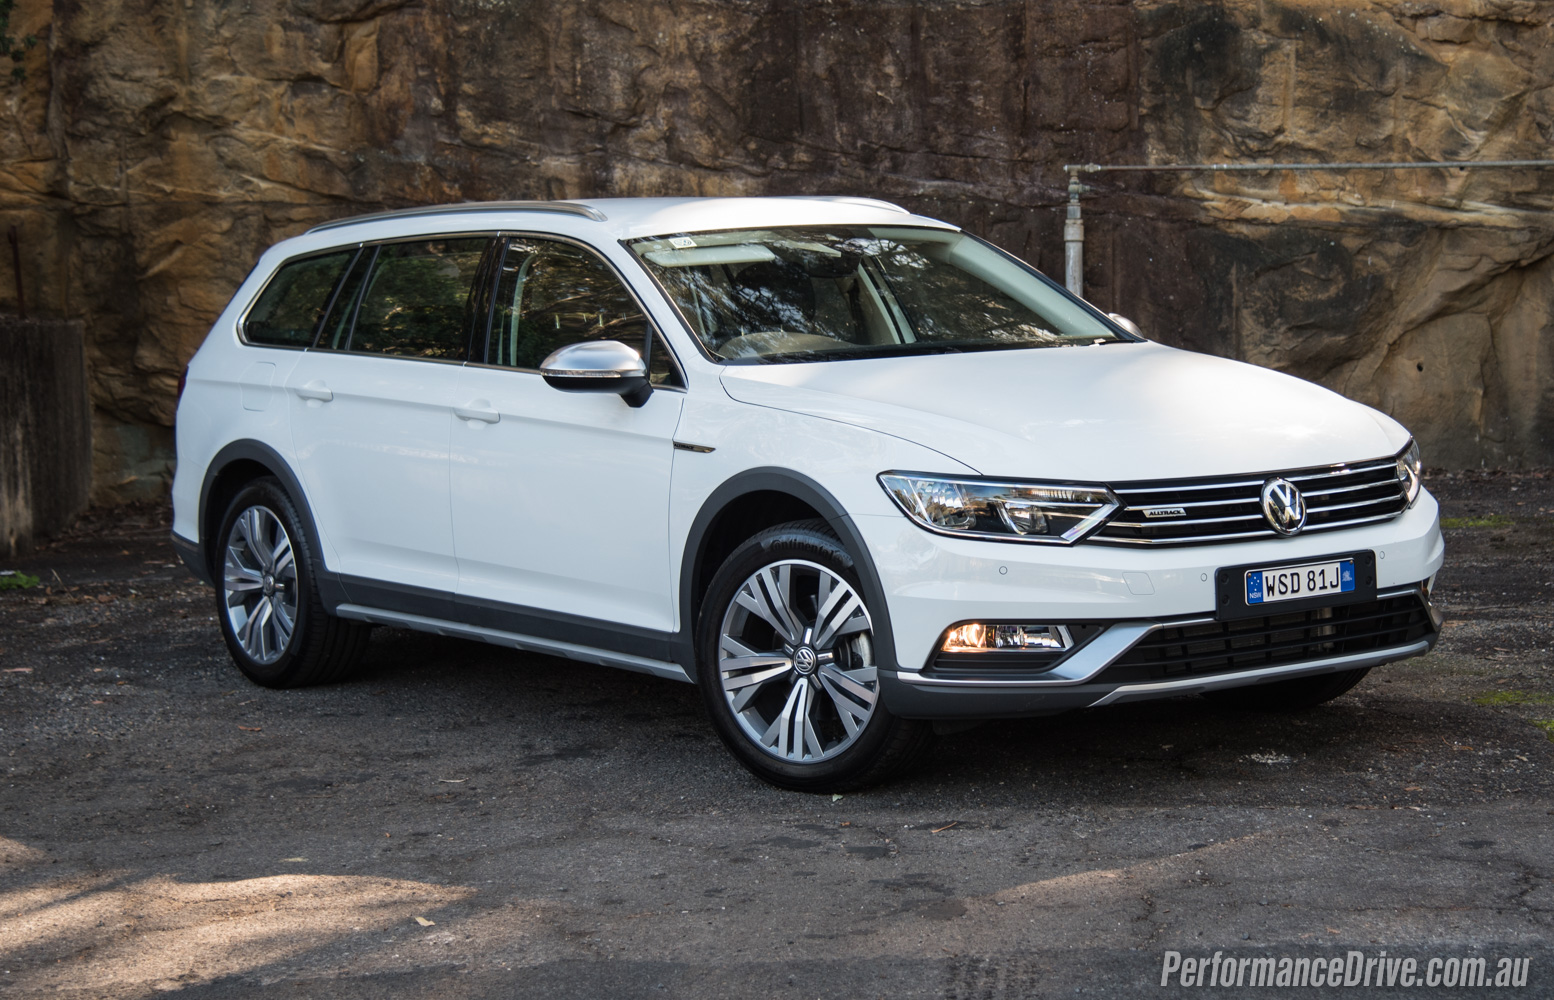 2016 Volkswagen Passat Alltrack review (video) | PerformanceDrive